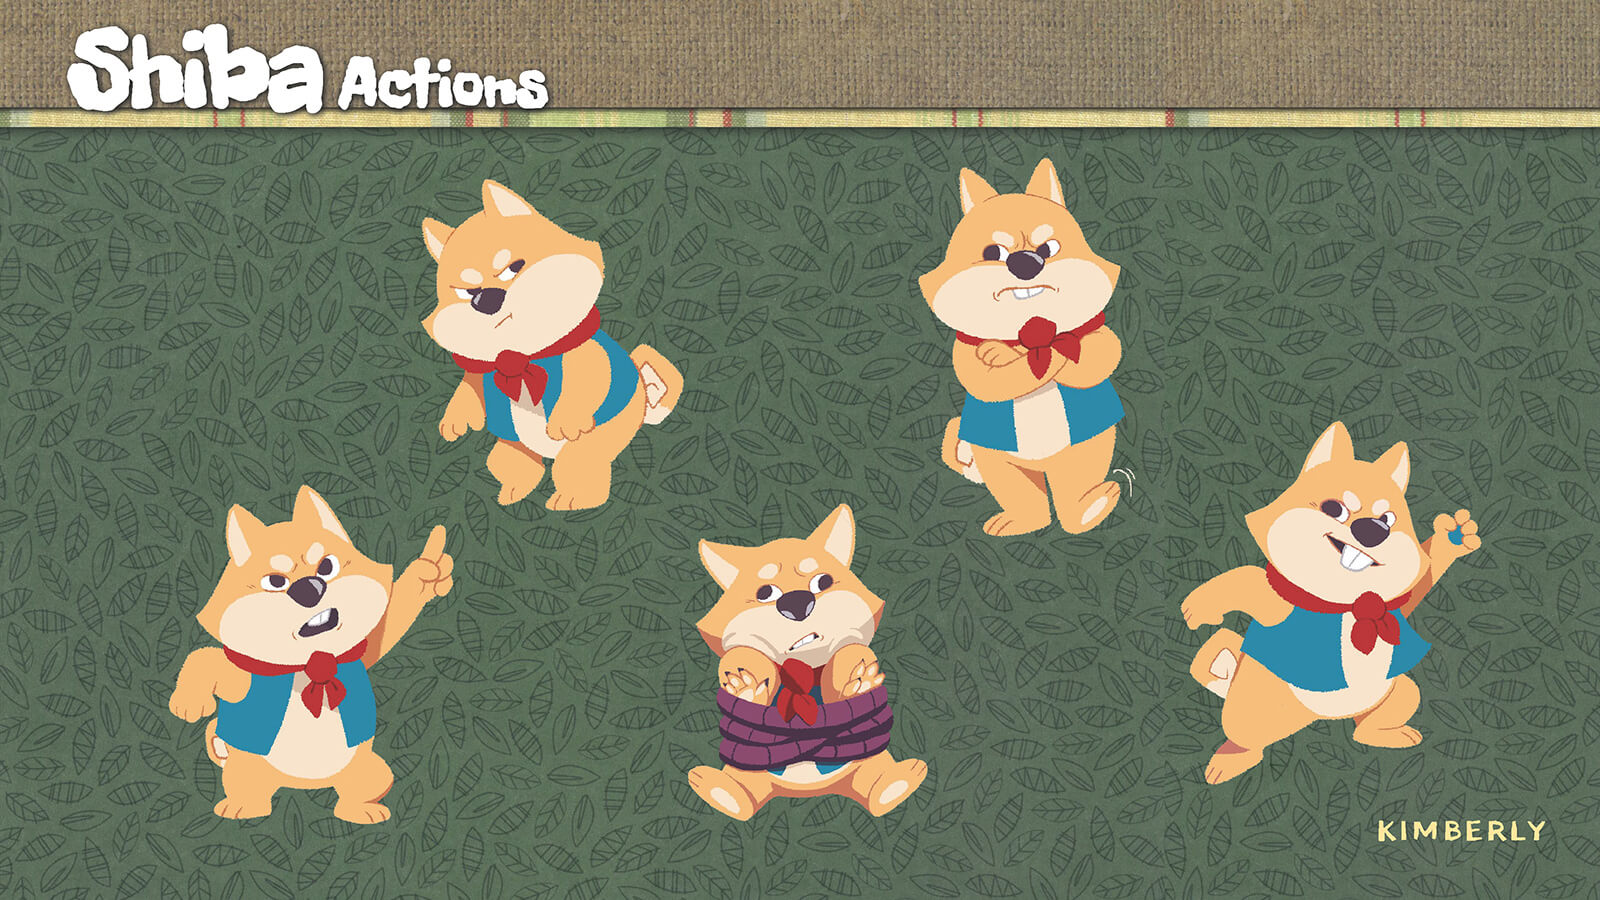 Sketches and examples of actions by the character Shiba.